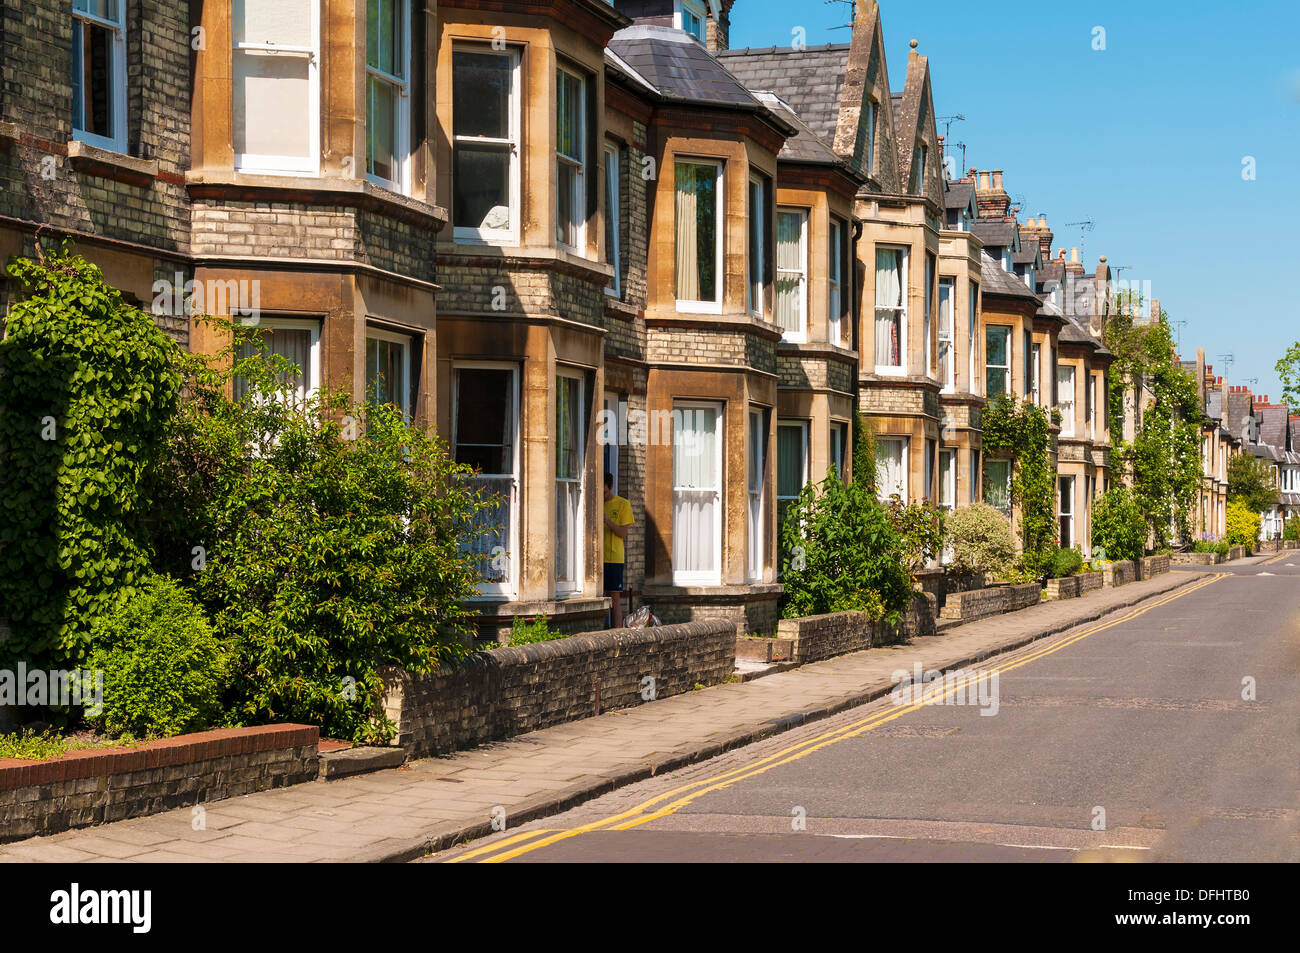 Row of terrace houses in typical English street - Stock Image